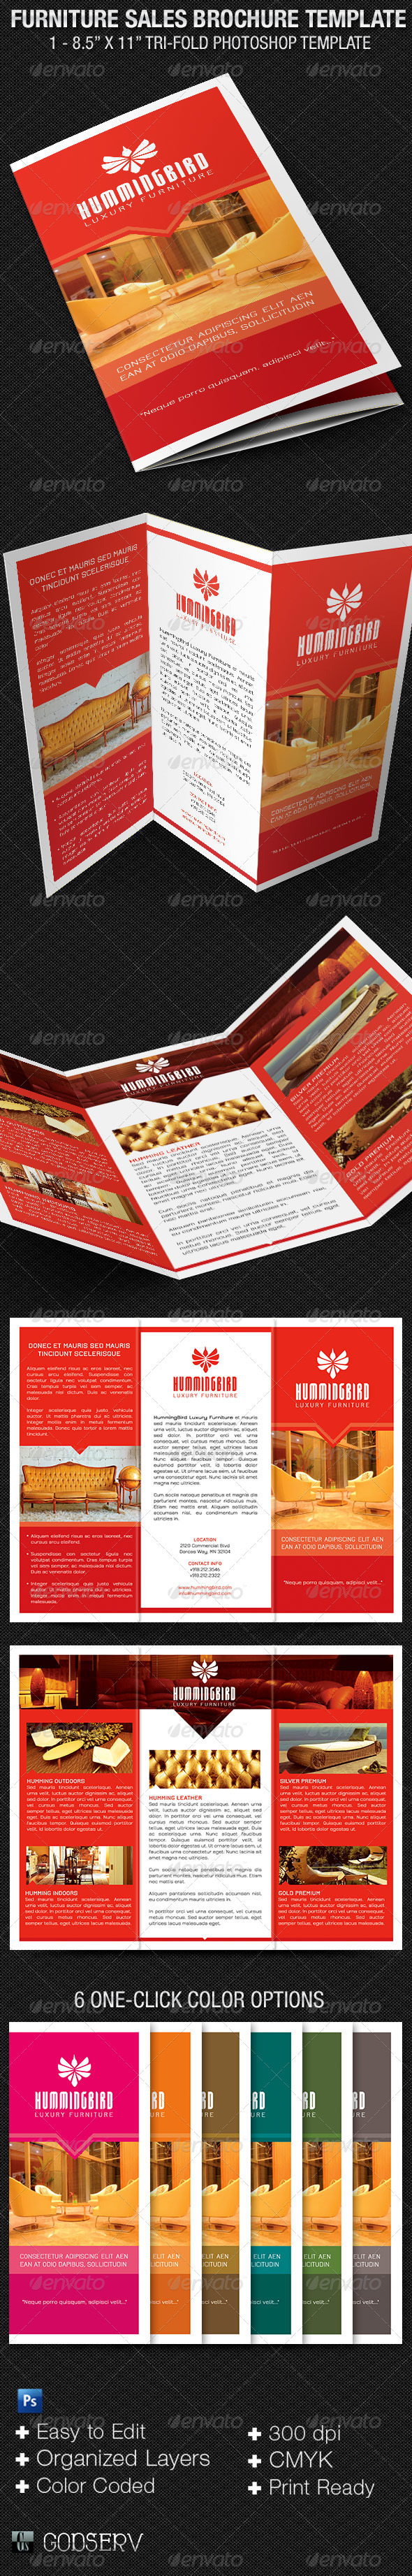 Furniture Sales Brochure Template - Corporate Brochures